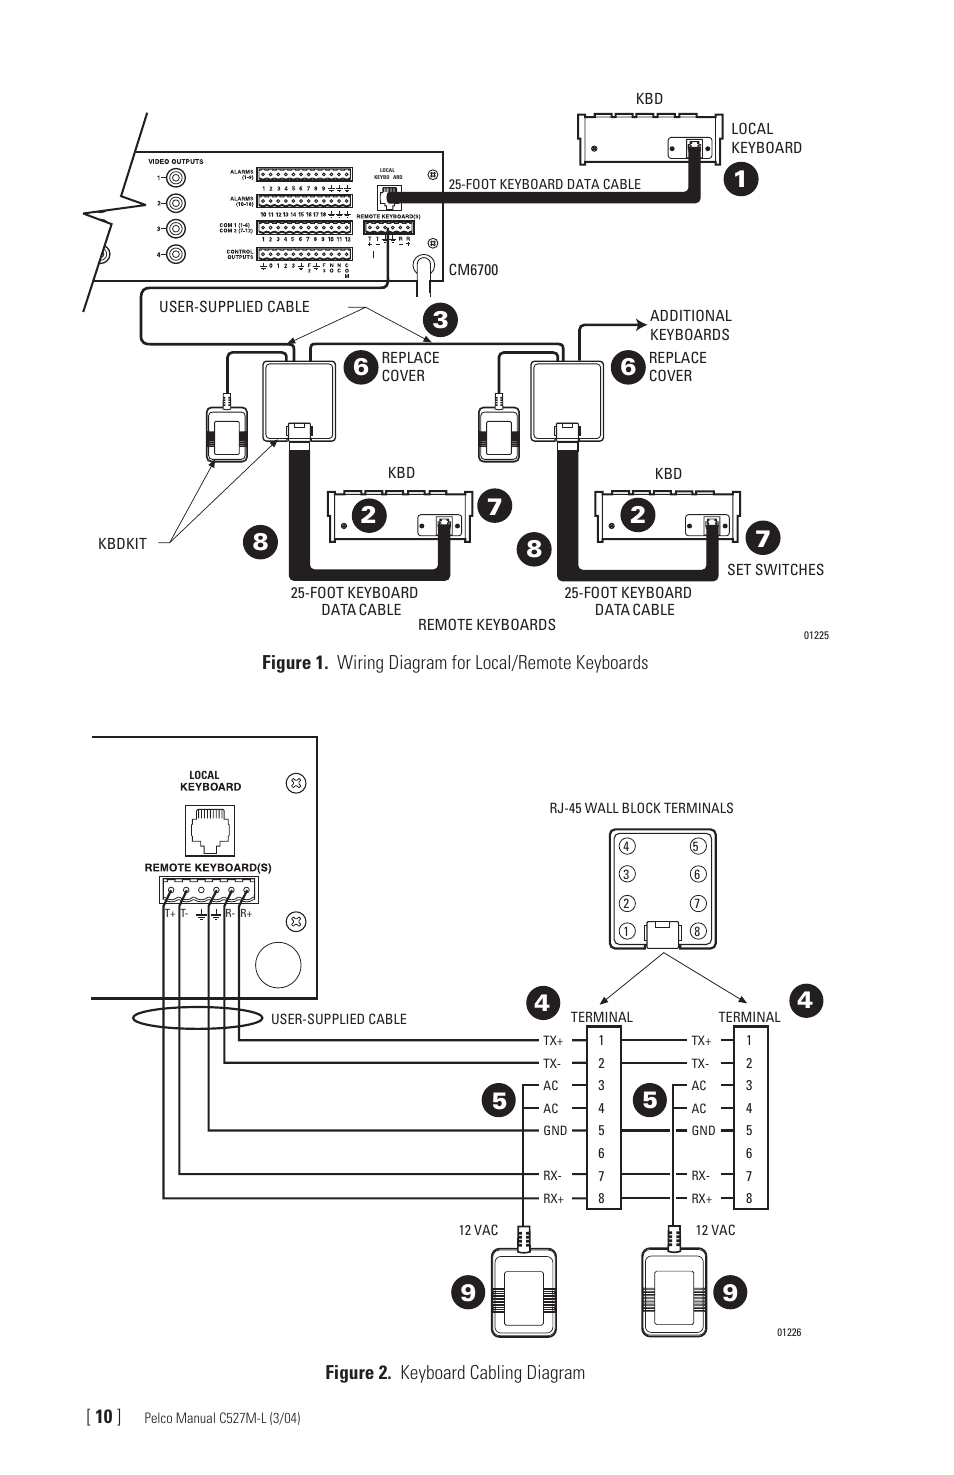 pelco universal keyboard kbd300a user manual page 10 40